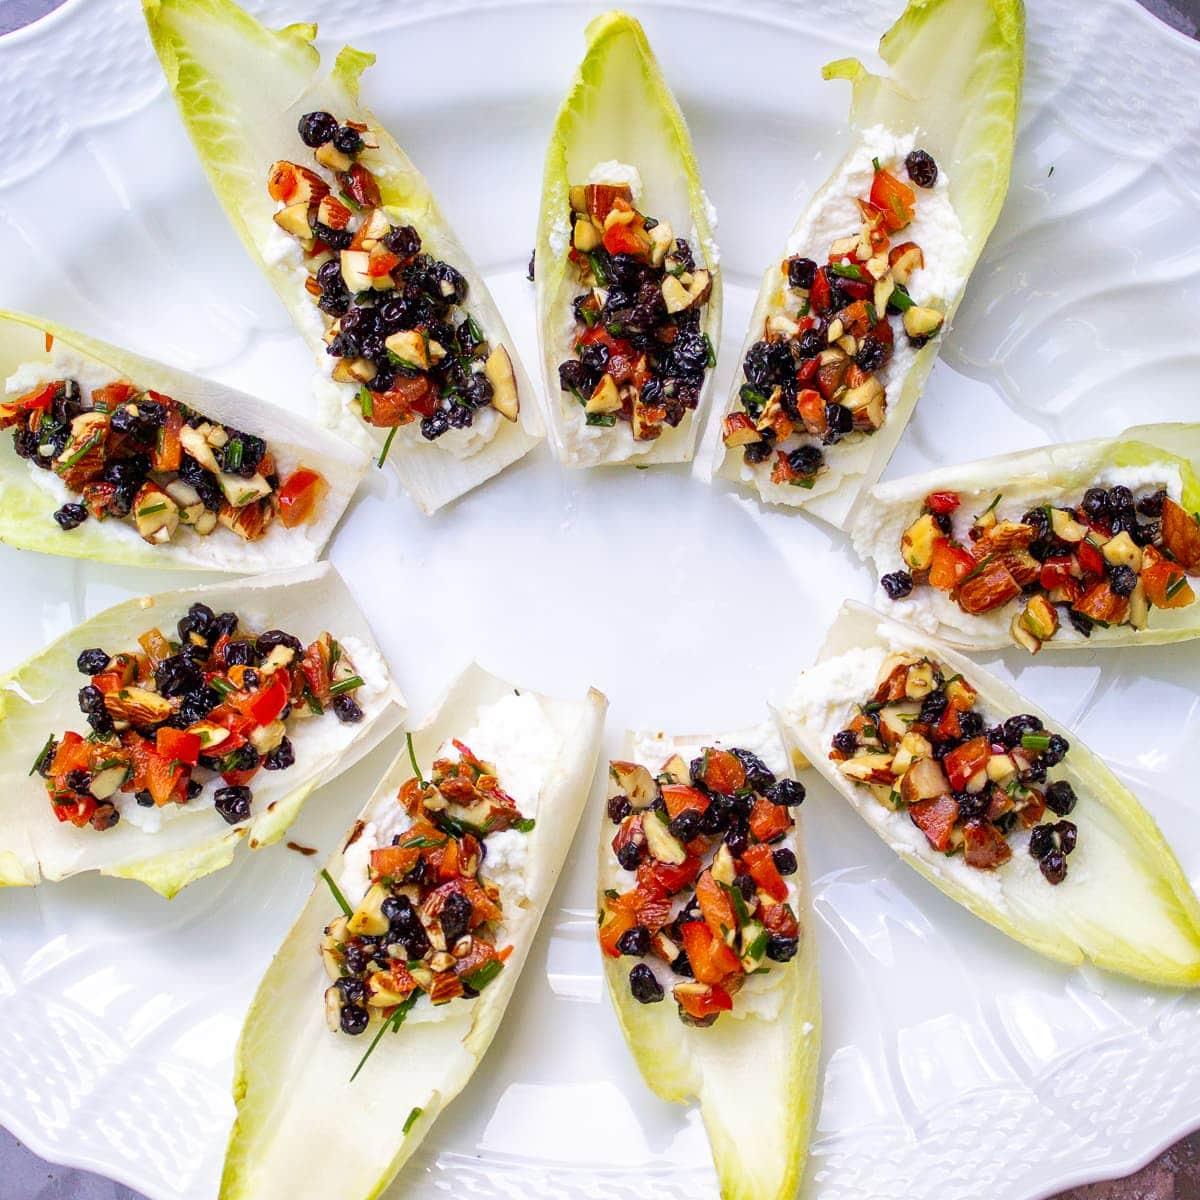 endive appetizers on plate 1